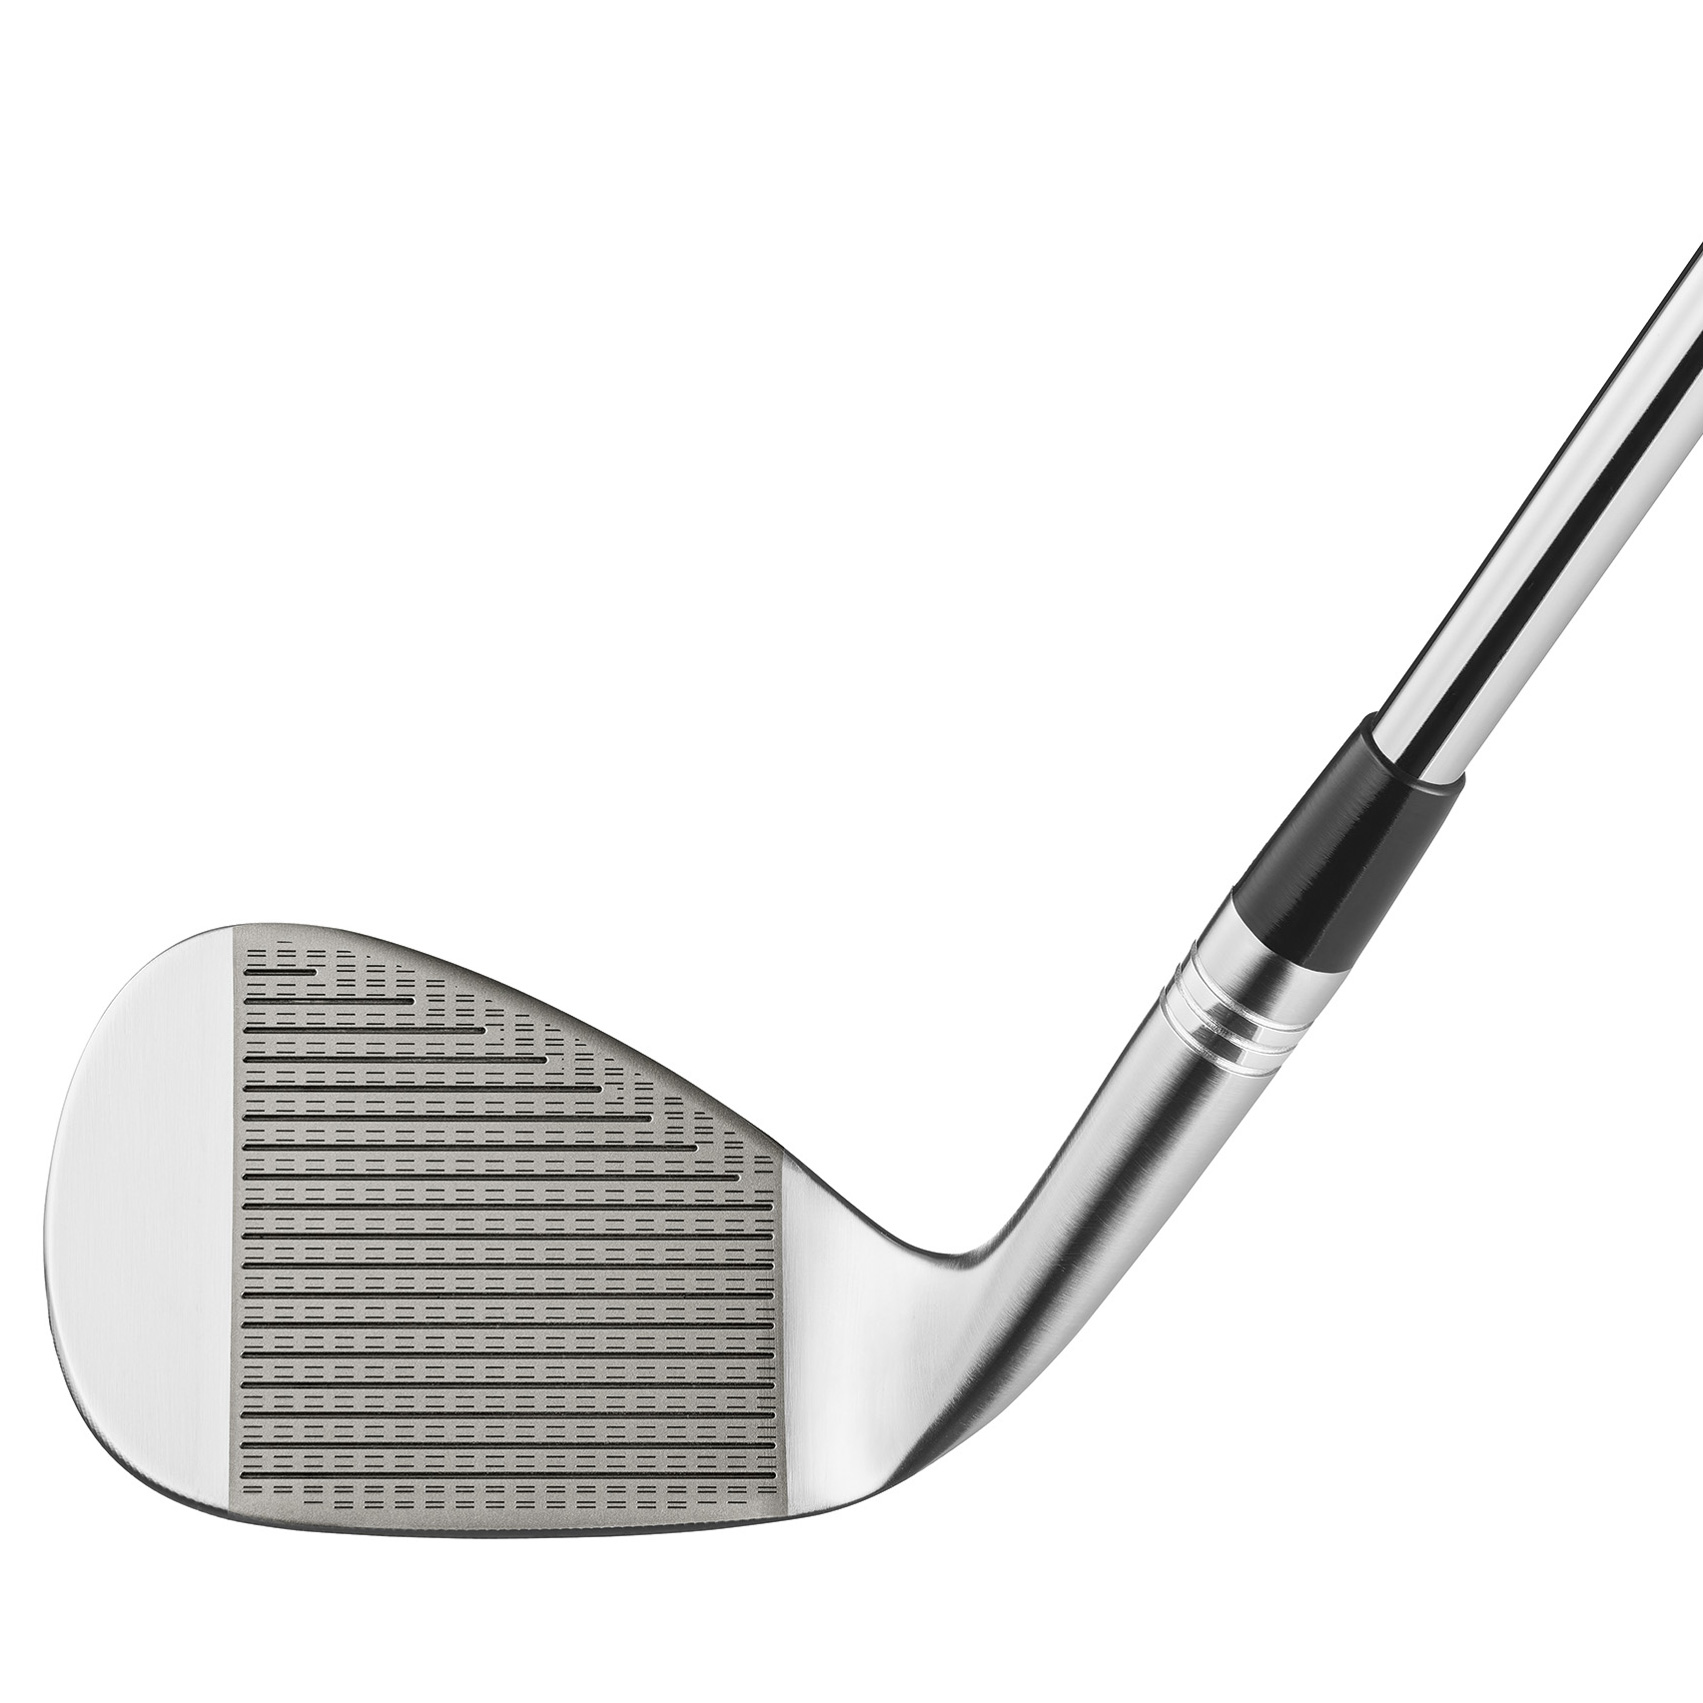 New TaylorMade MG2 Tiger Woods Wedge Toe